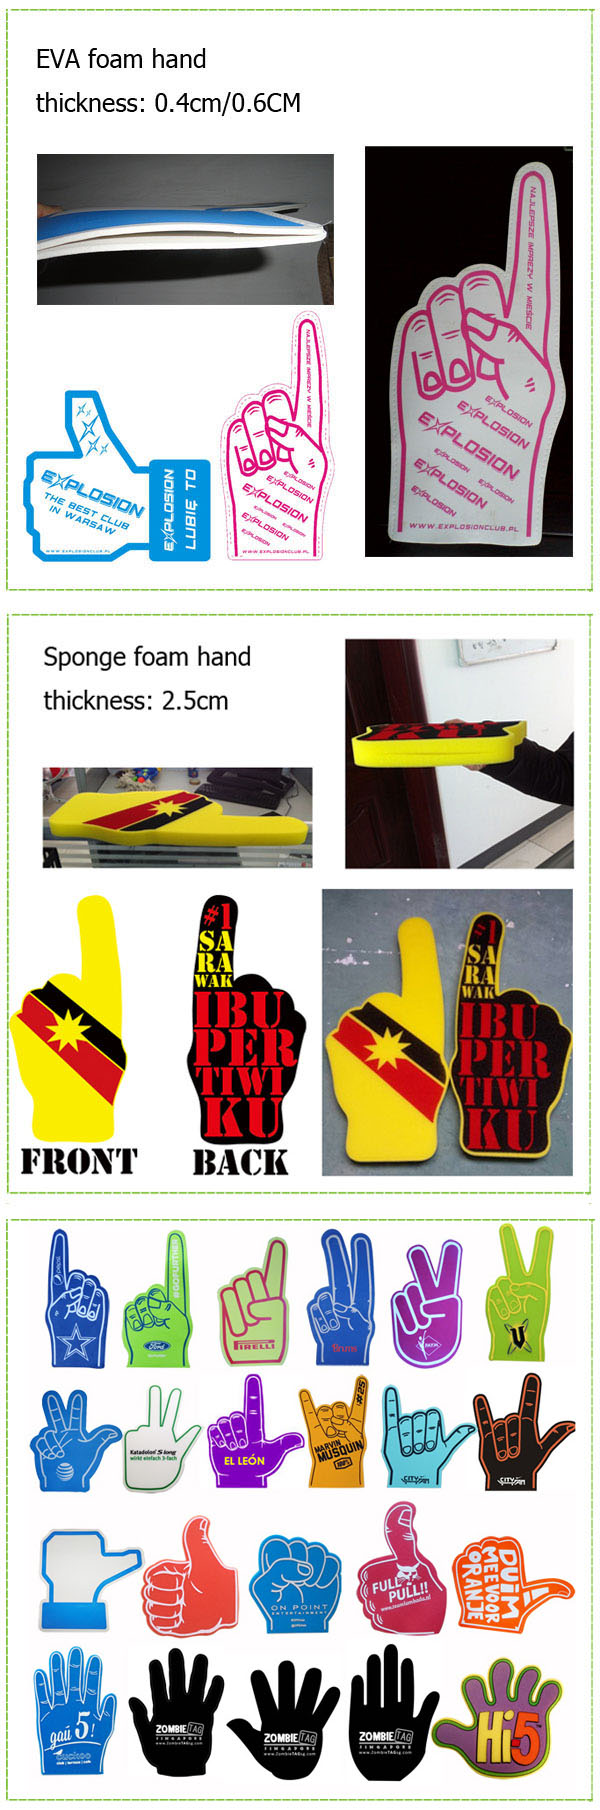 Giant cheering thumb up PU sponge hand